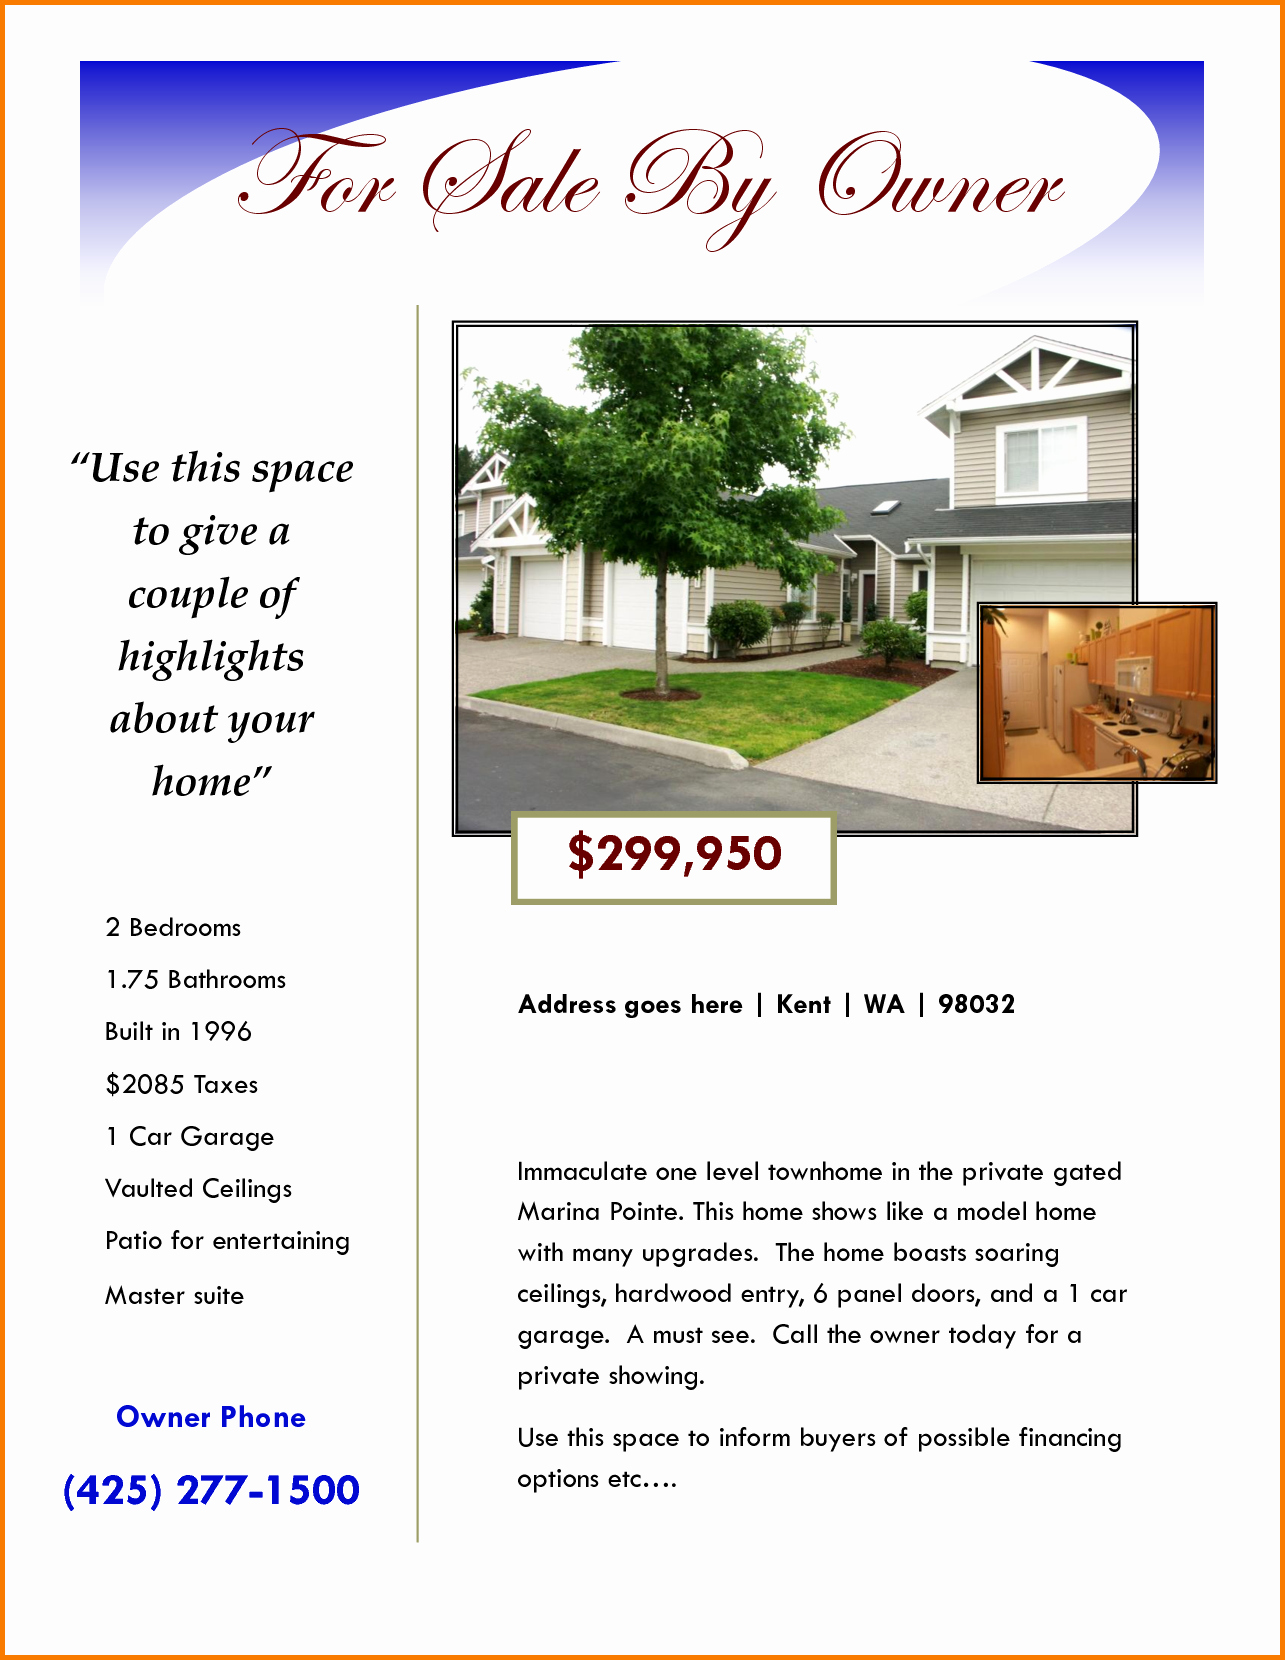 For Sale Template Word Best Of for Sale Flyer Template